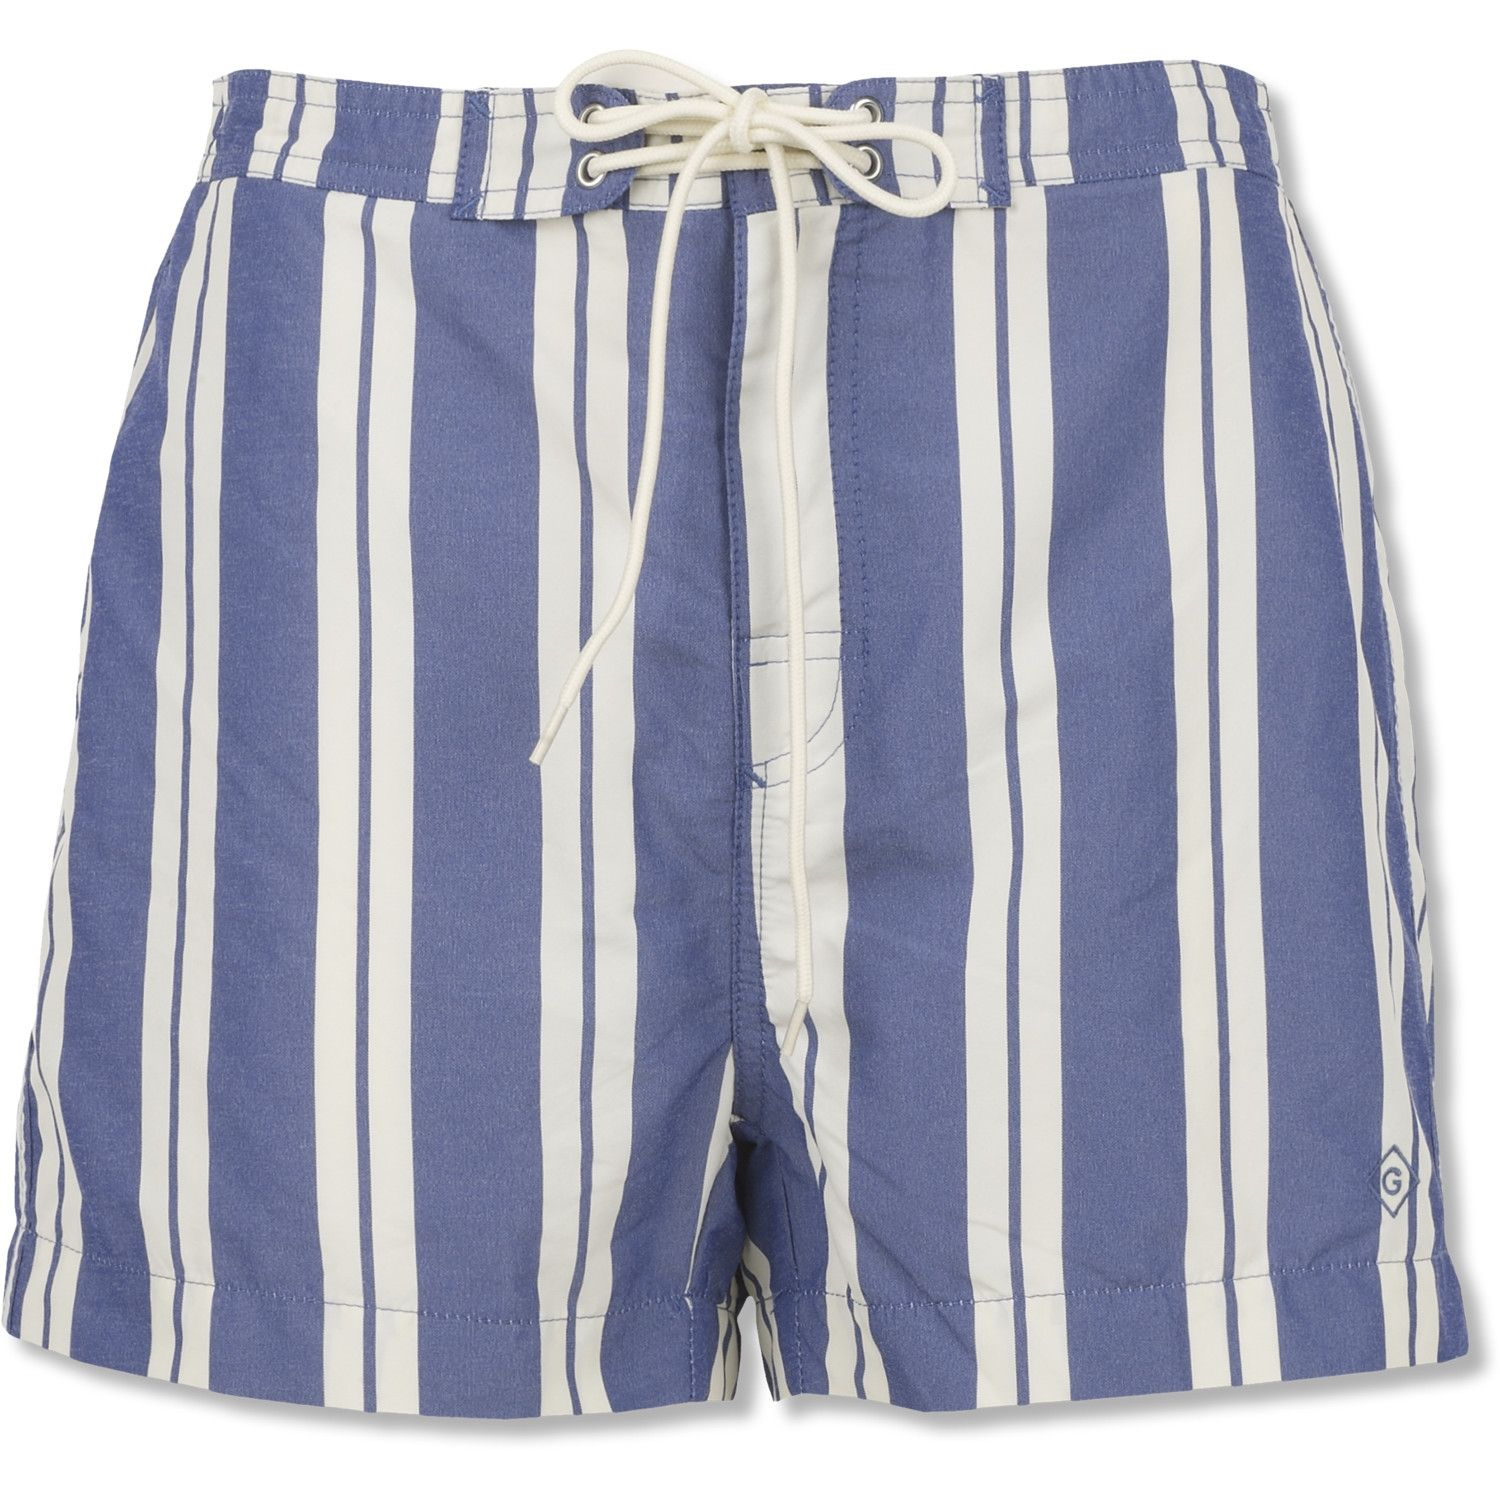 d70c8c886 Blue-and-white vertical striped swim trunks | Swimsuits | Swimsuits ...